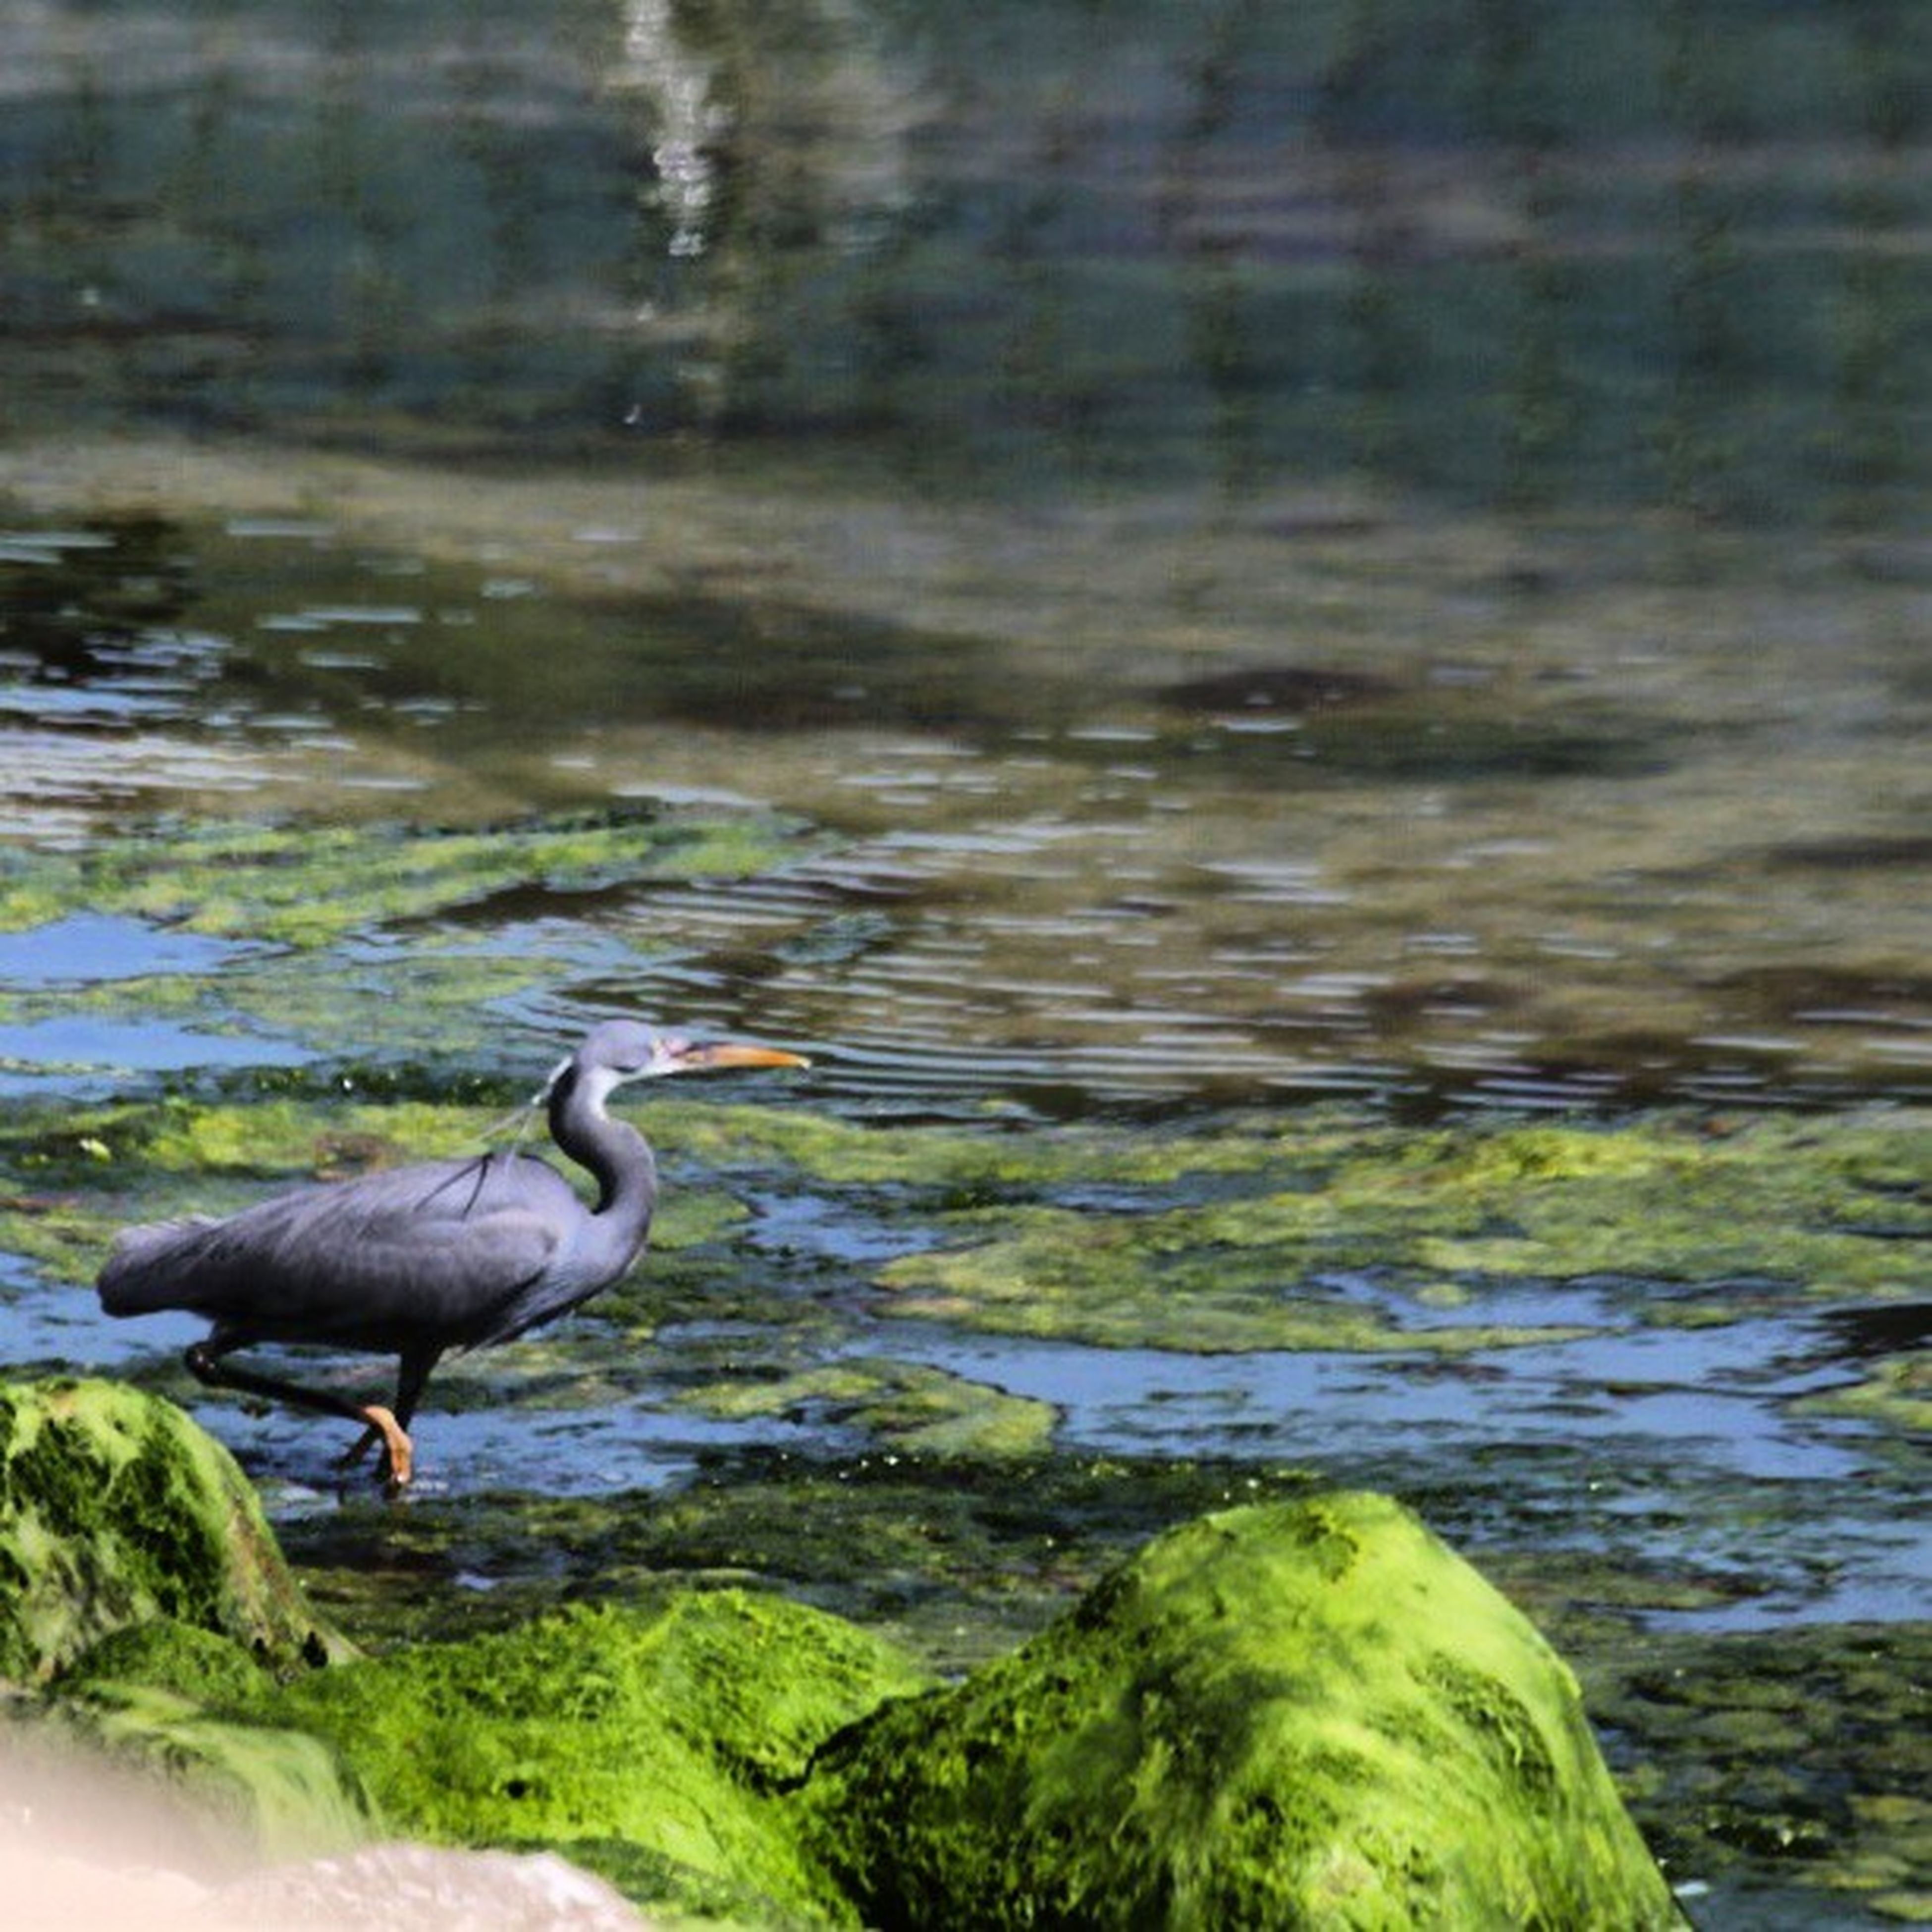 animals in the wild, animal themes, bird, wildlife, water, lake, nature, duck, two animals, one animal, beauty in nature, swimming, outdoors, rock - object, day, side view, beak, no people, reflection, mallard duck